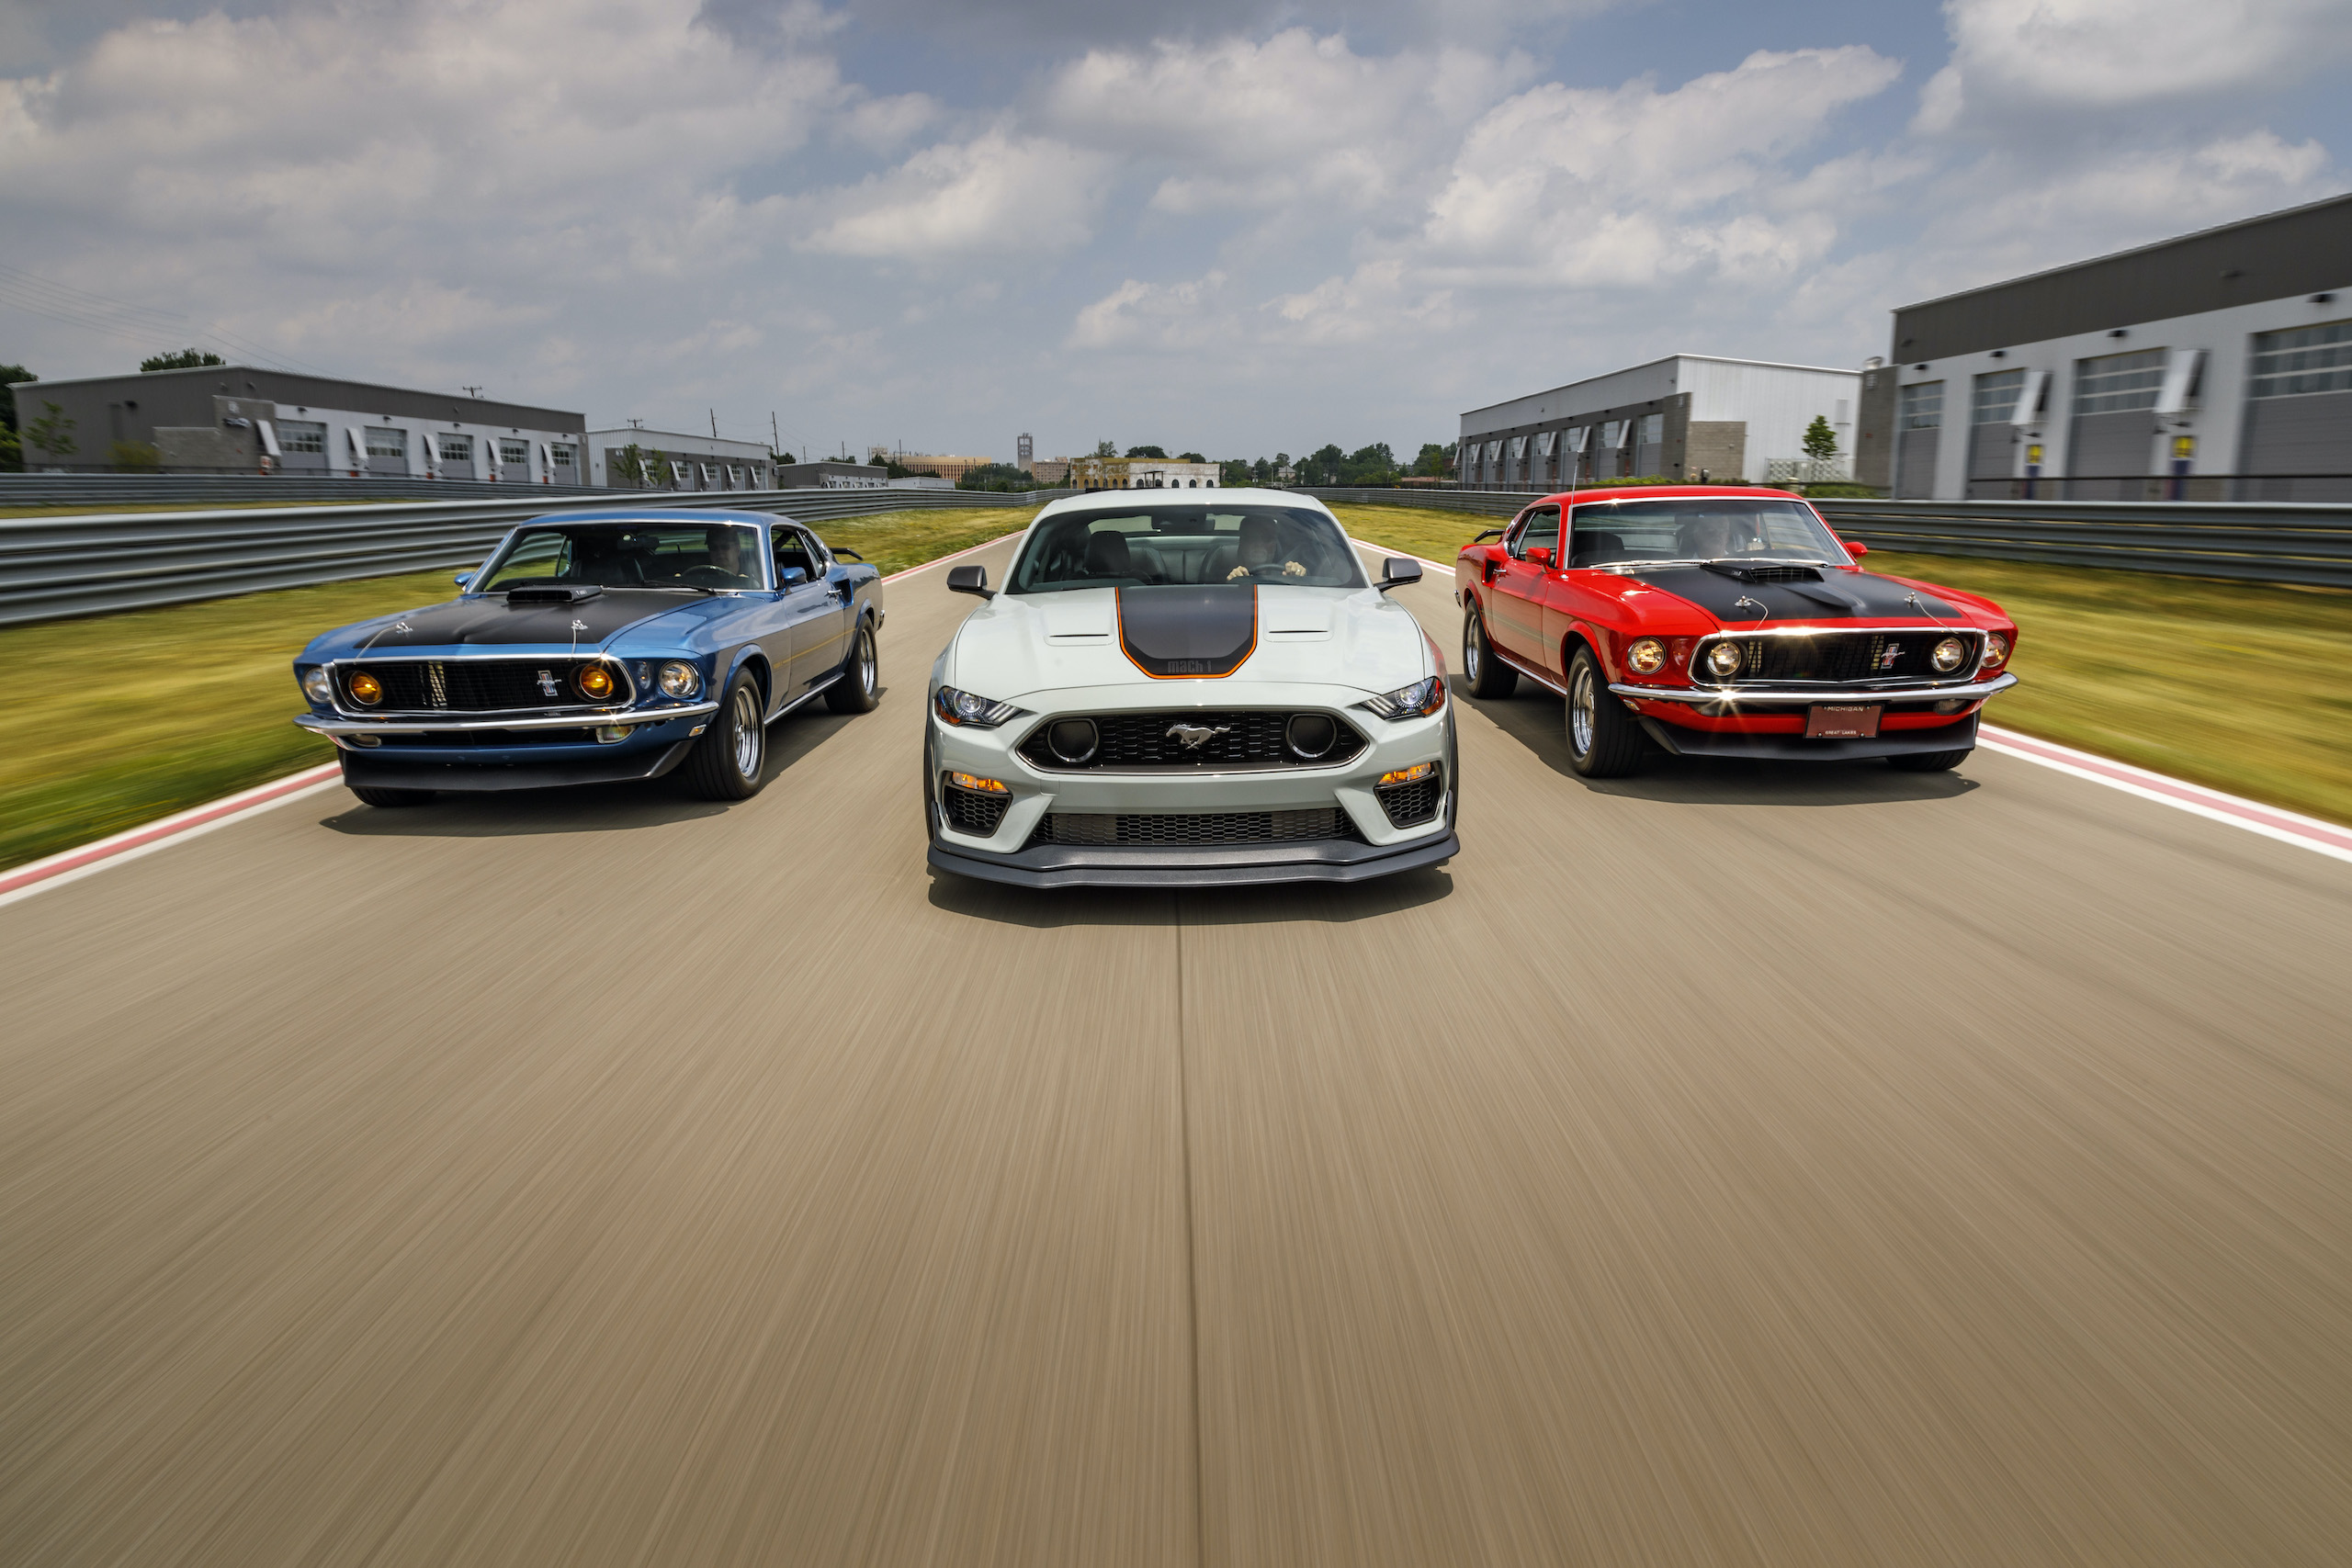 2021 Mustang Mach 1 white with classics on track action front